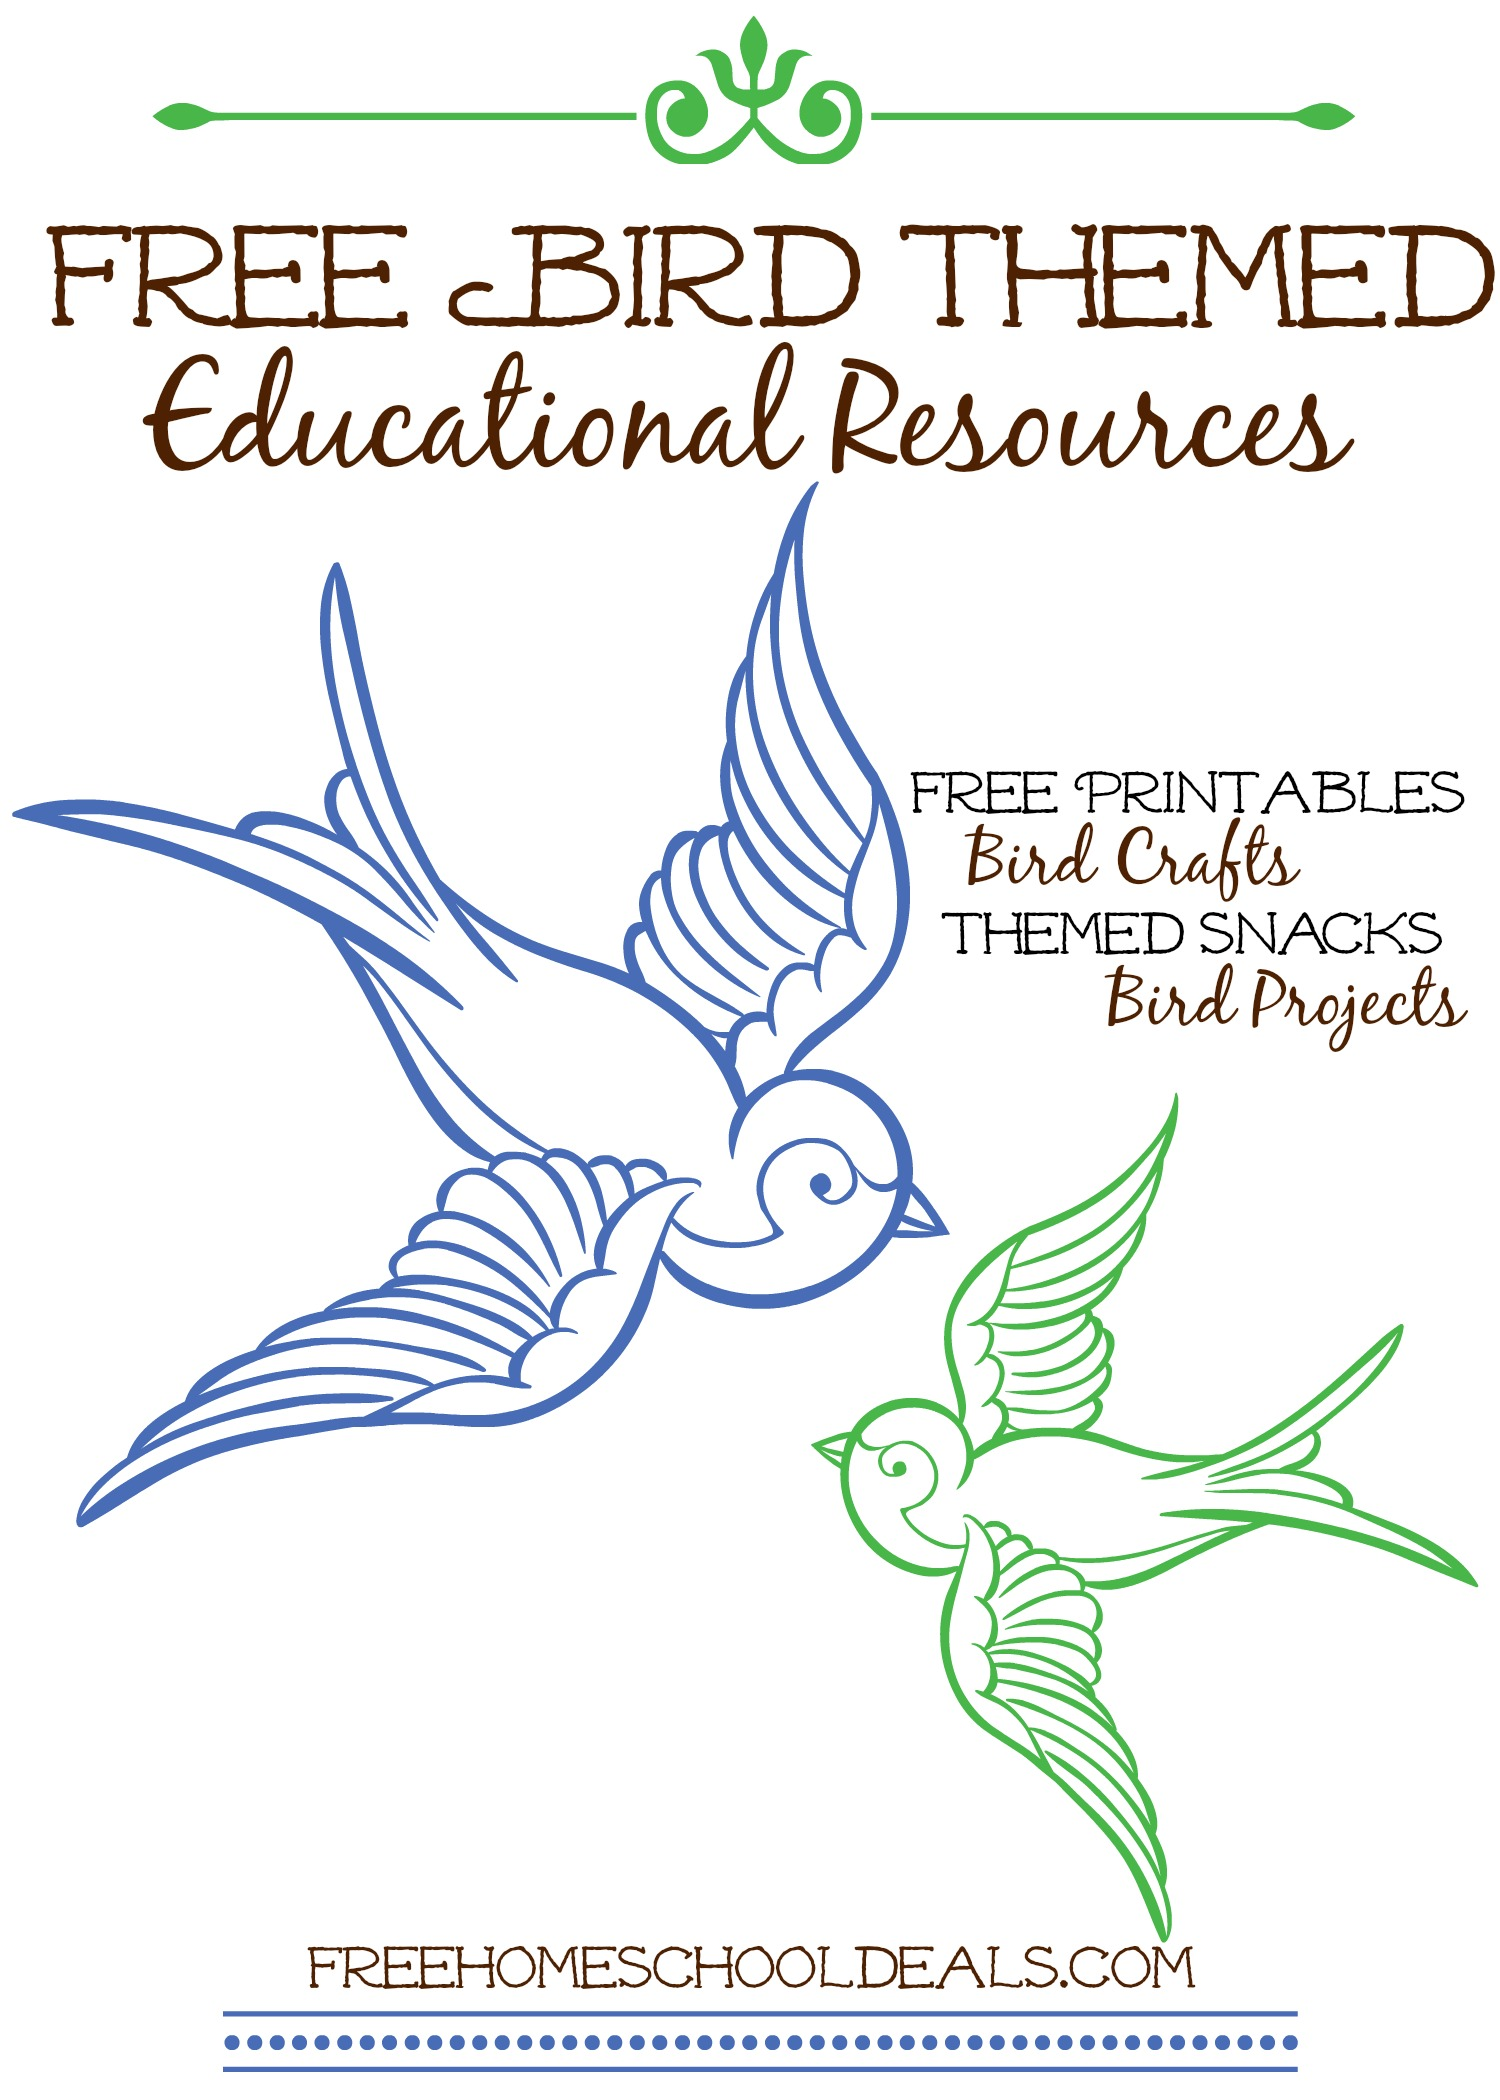 Free Bird Themed Educational Resources